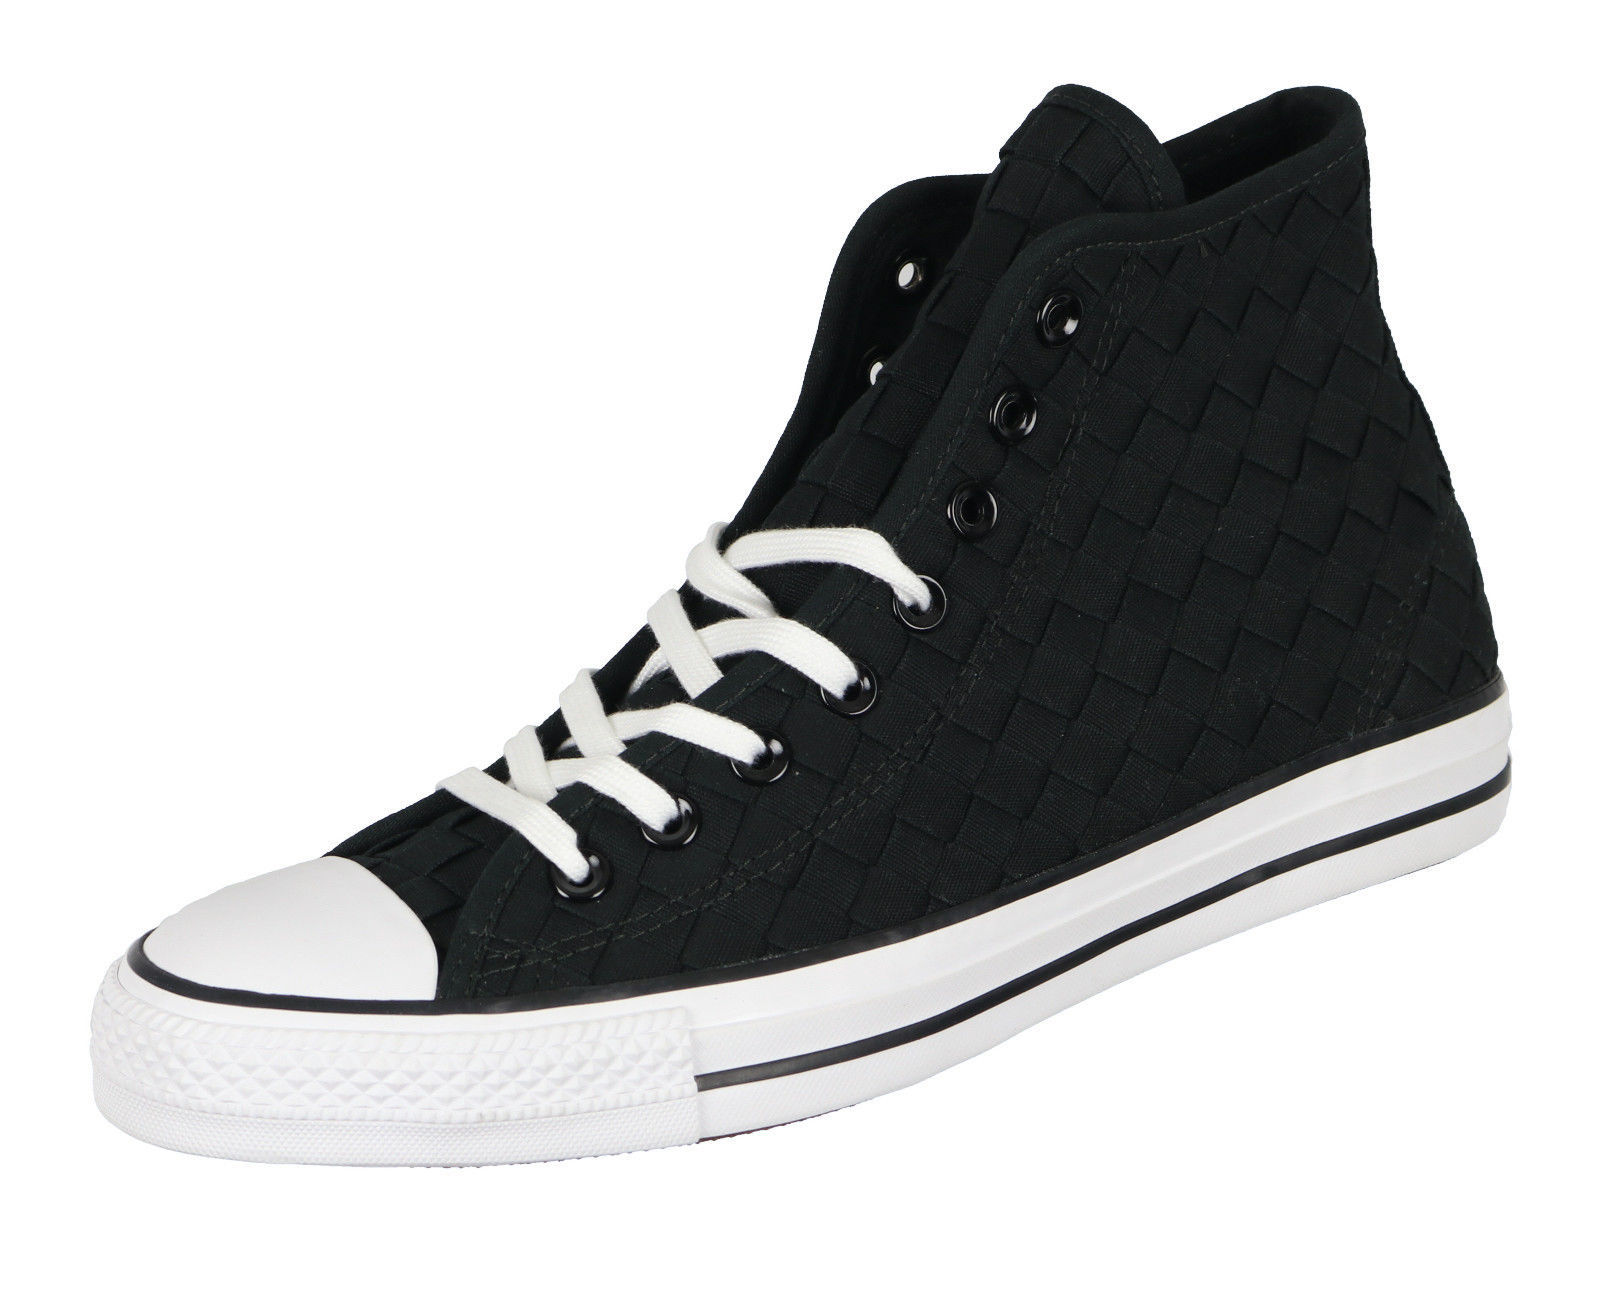 6bdf5f830a16 CONVERSE Chuck Taylor All Star Hi Top Woven sz 9 Black White High 151234C